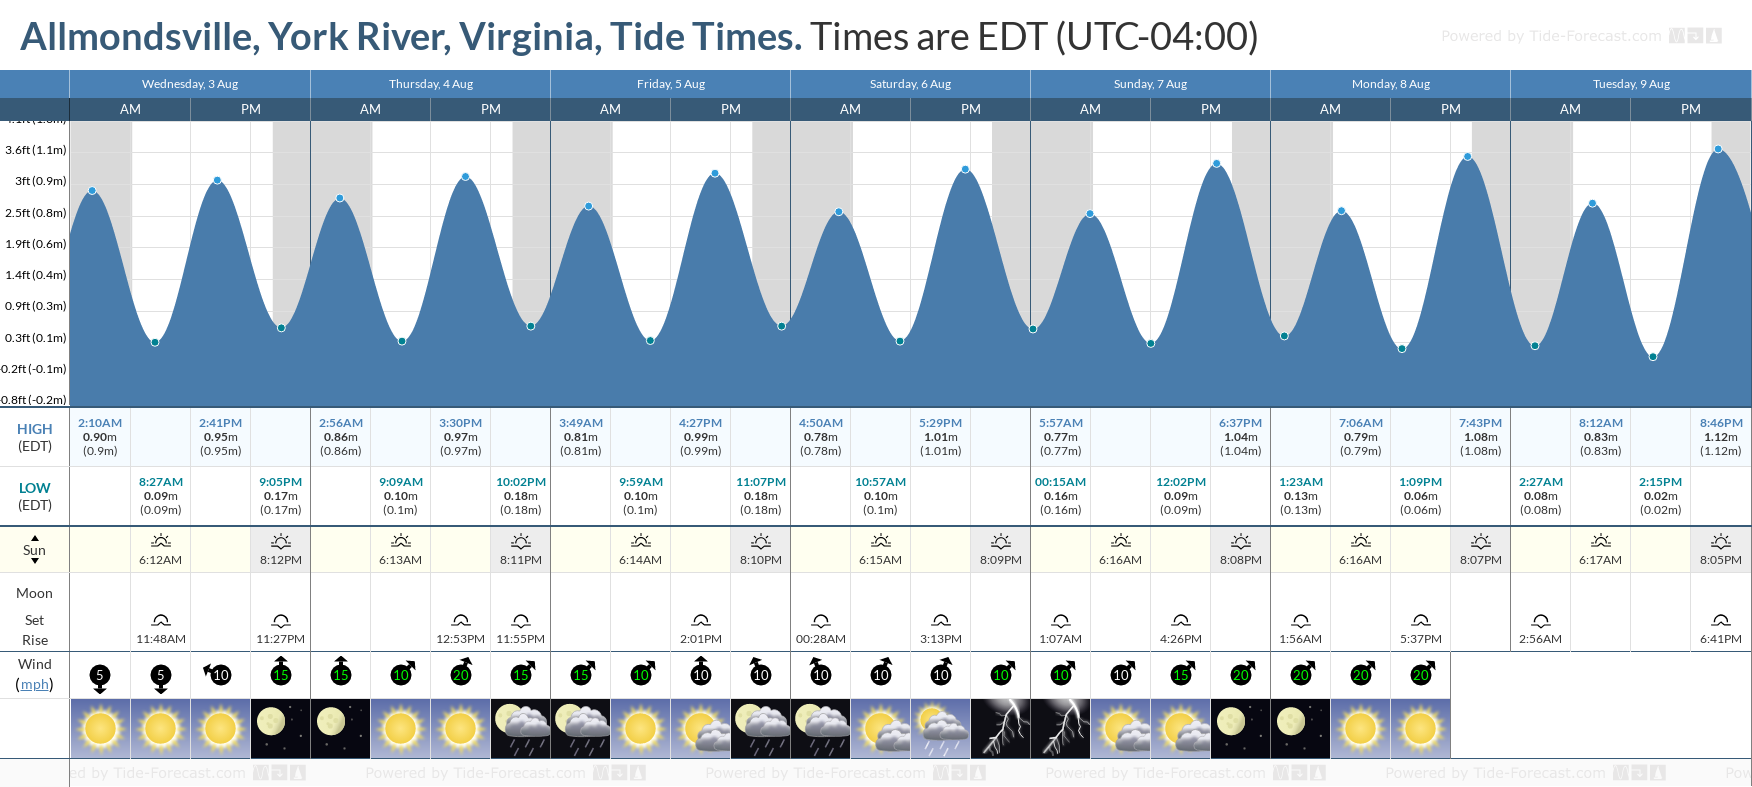 Allmondsville, York River, Virginia Tide Chart including high and low tide tide times for the next 7 days